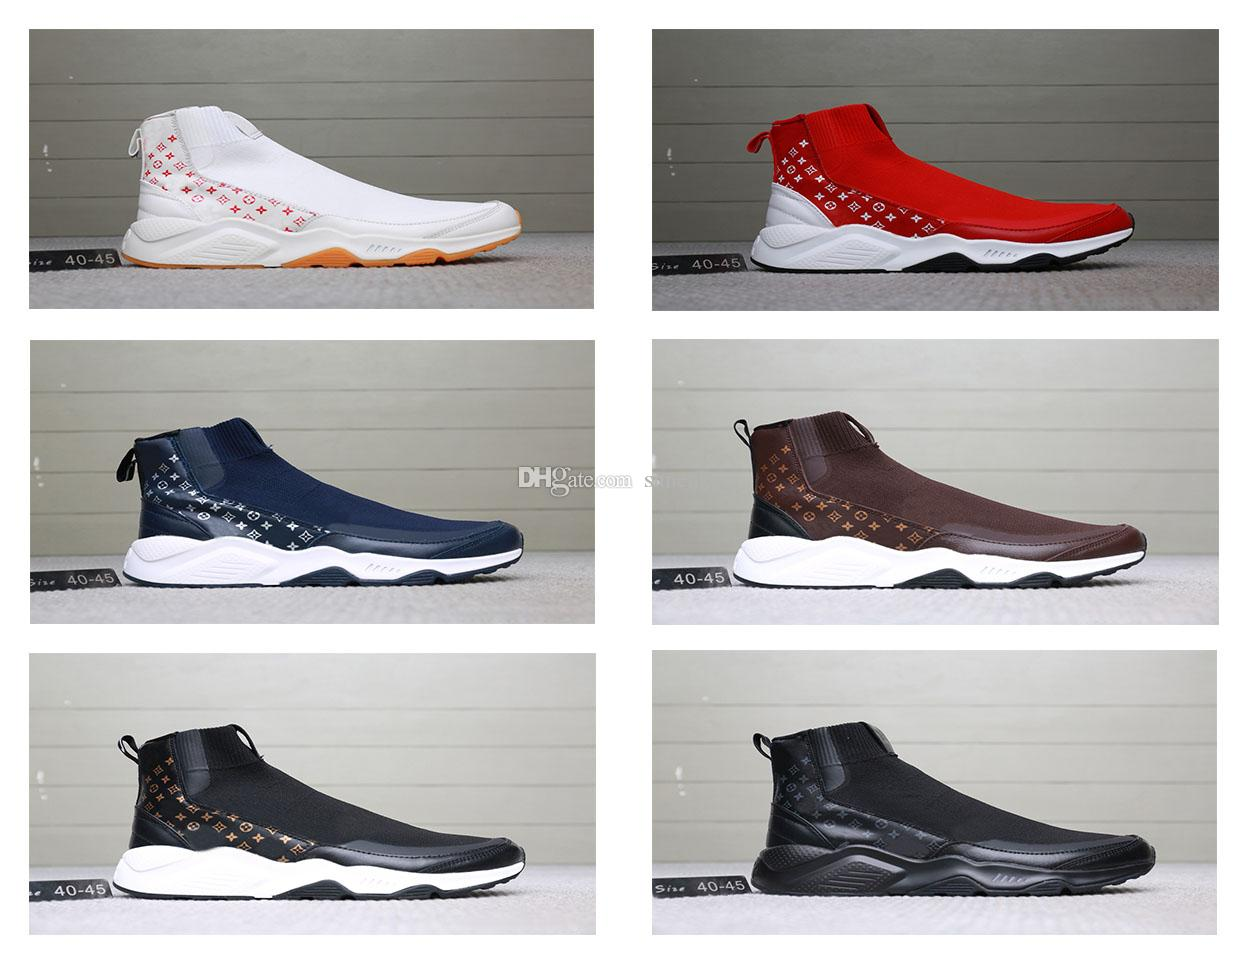 61f8818fb12 Compre Nike Luxury Brand Shoes Louis Vuitton LV Ultra Zapatos De Hombre  Triples Blanco Negro Zapatos De Diseñador Rojo Gris Huaraches Mens Shoes  Original ...